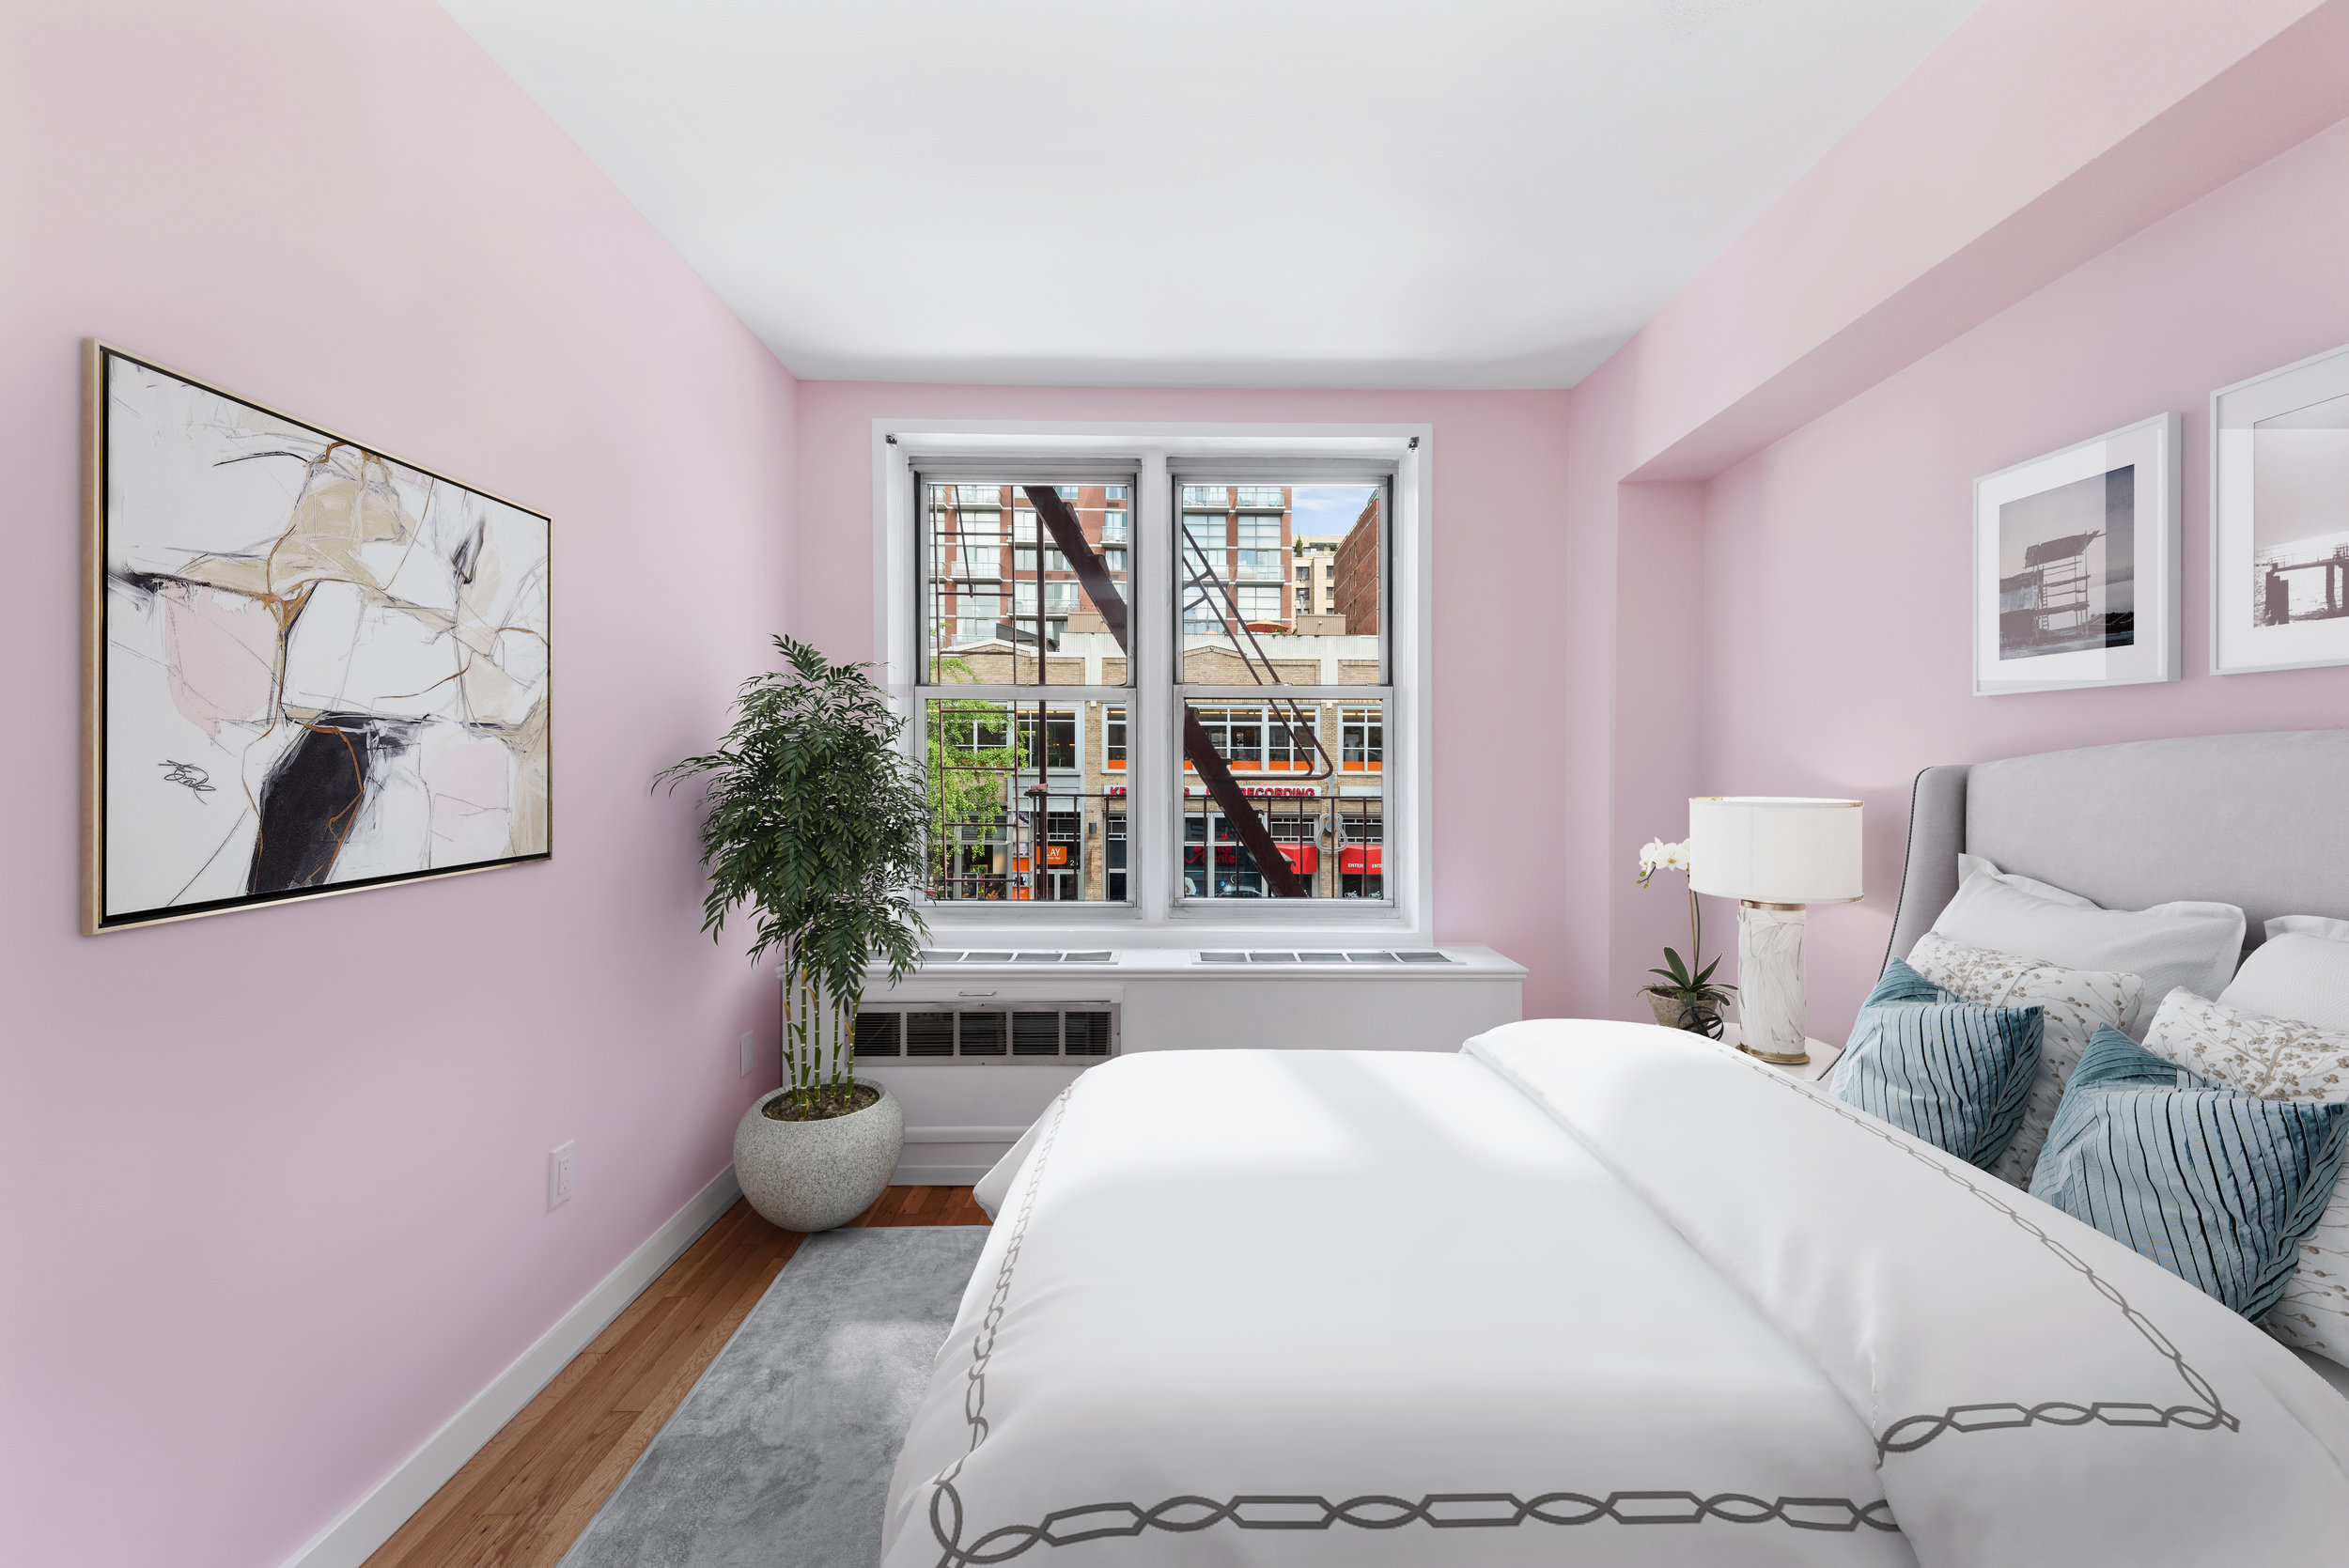 Union Square bedroom pink by Bolster.jpg